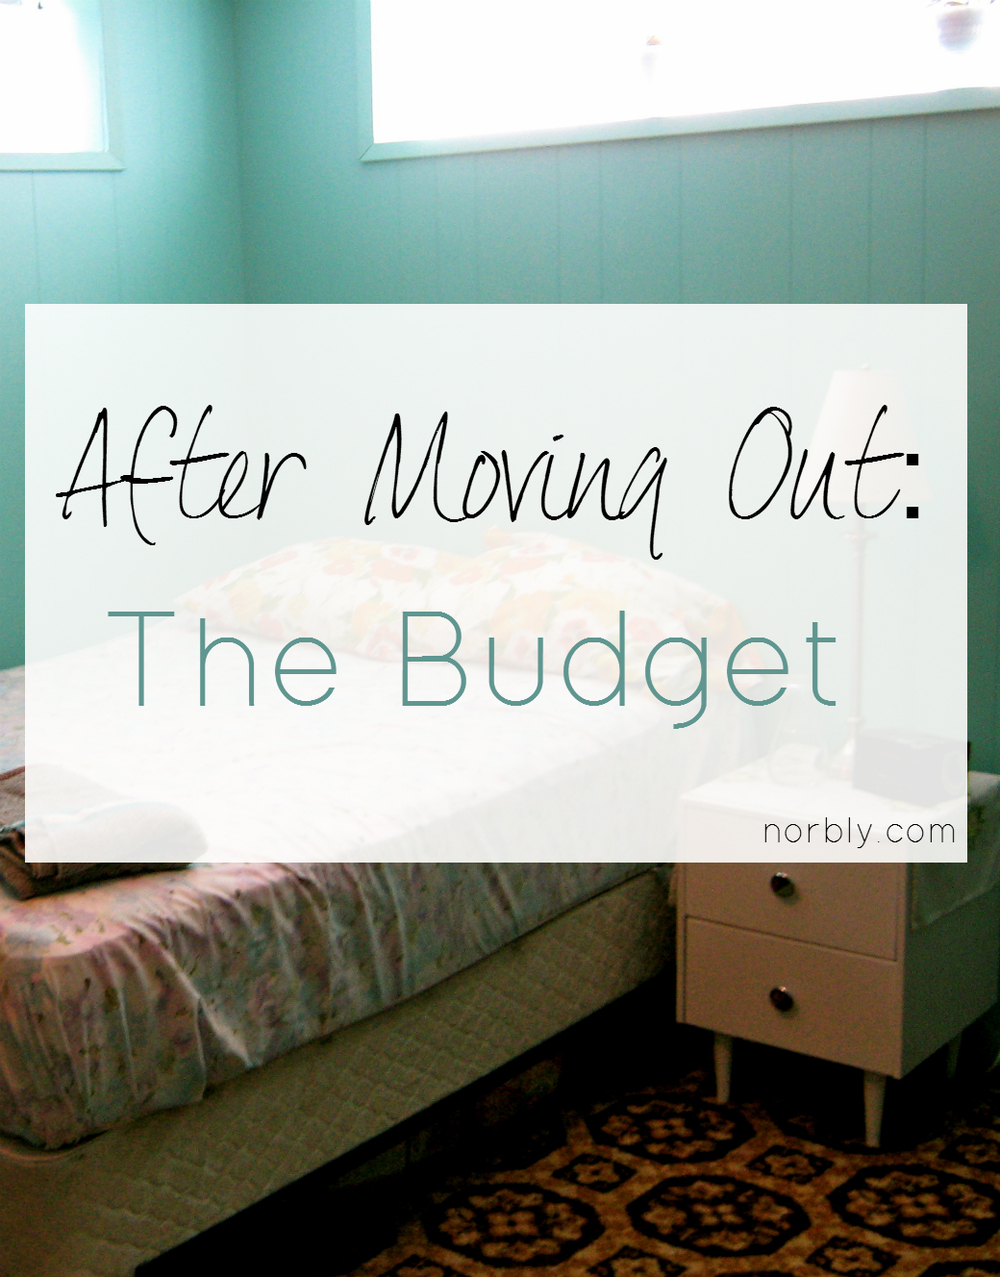 You've moved out and you're finally free! Until those bills start rolling in. Your old budget is no longer any help. Here's a step by step guide to making a new budget that will work for you, along with free resources and tips!